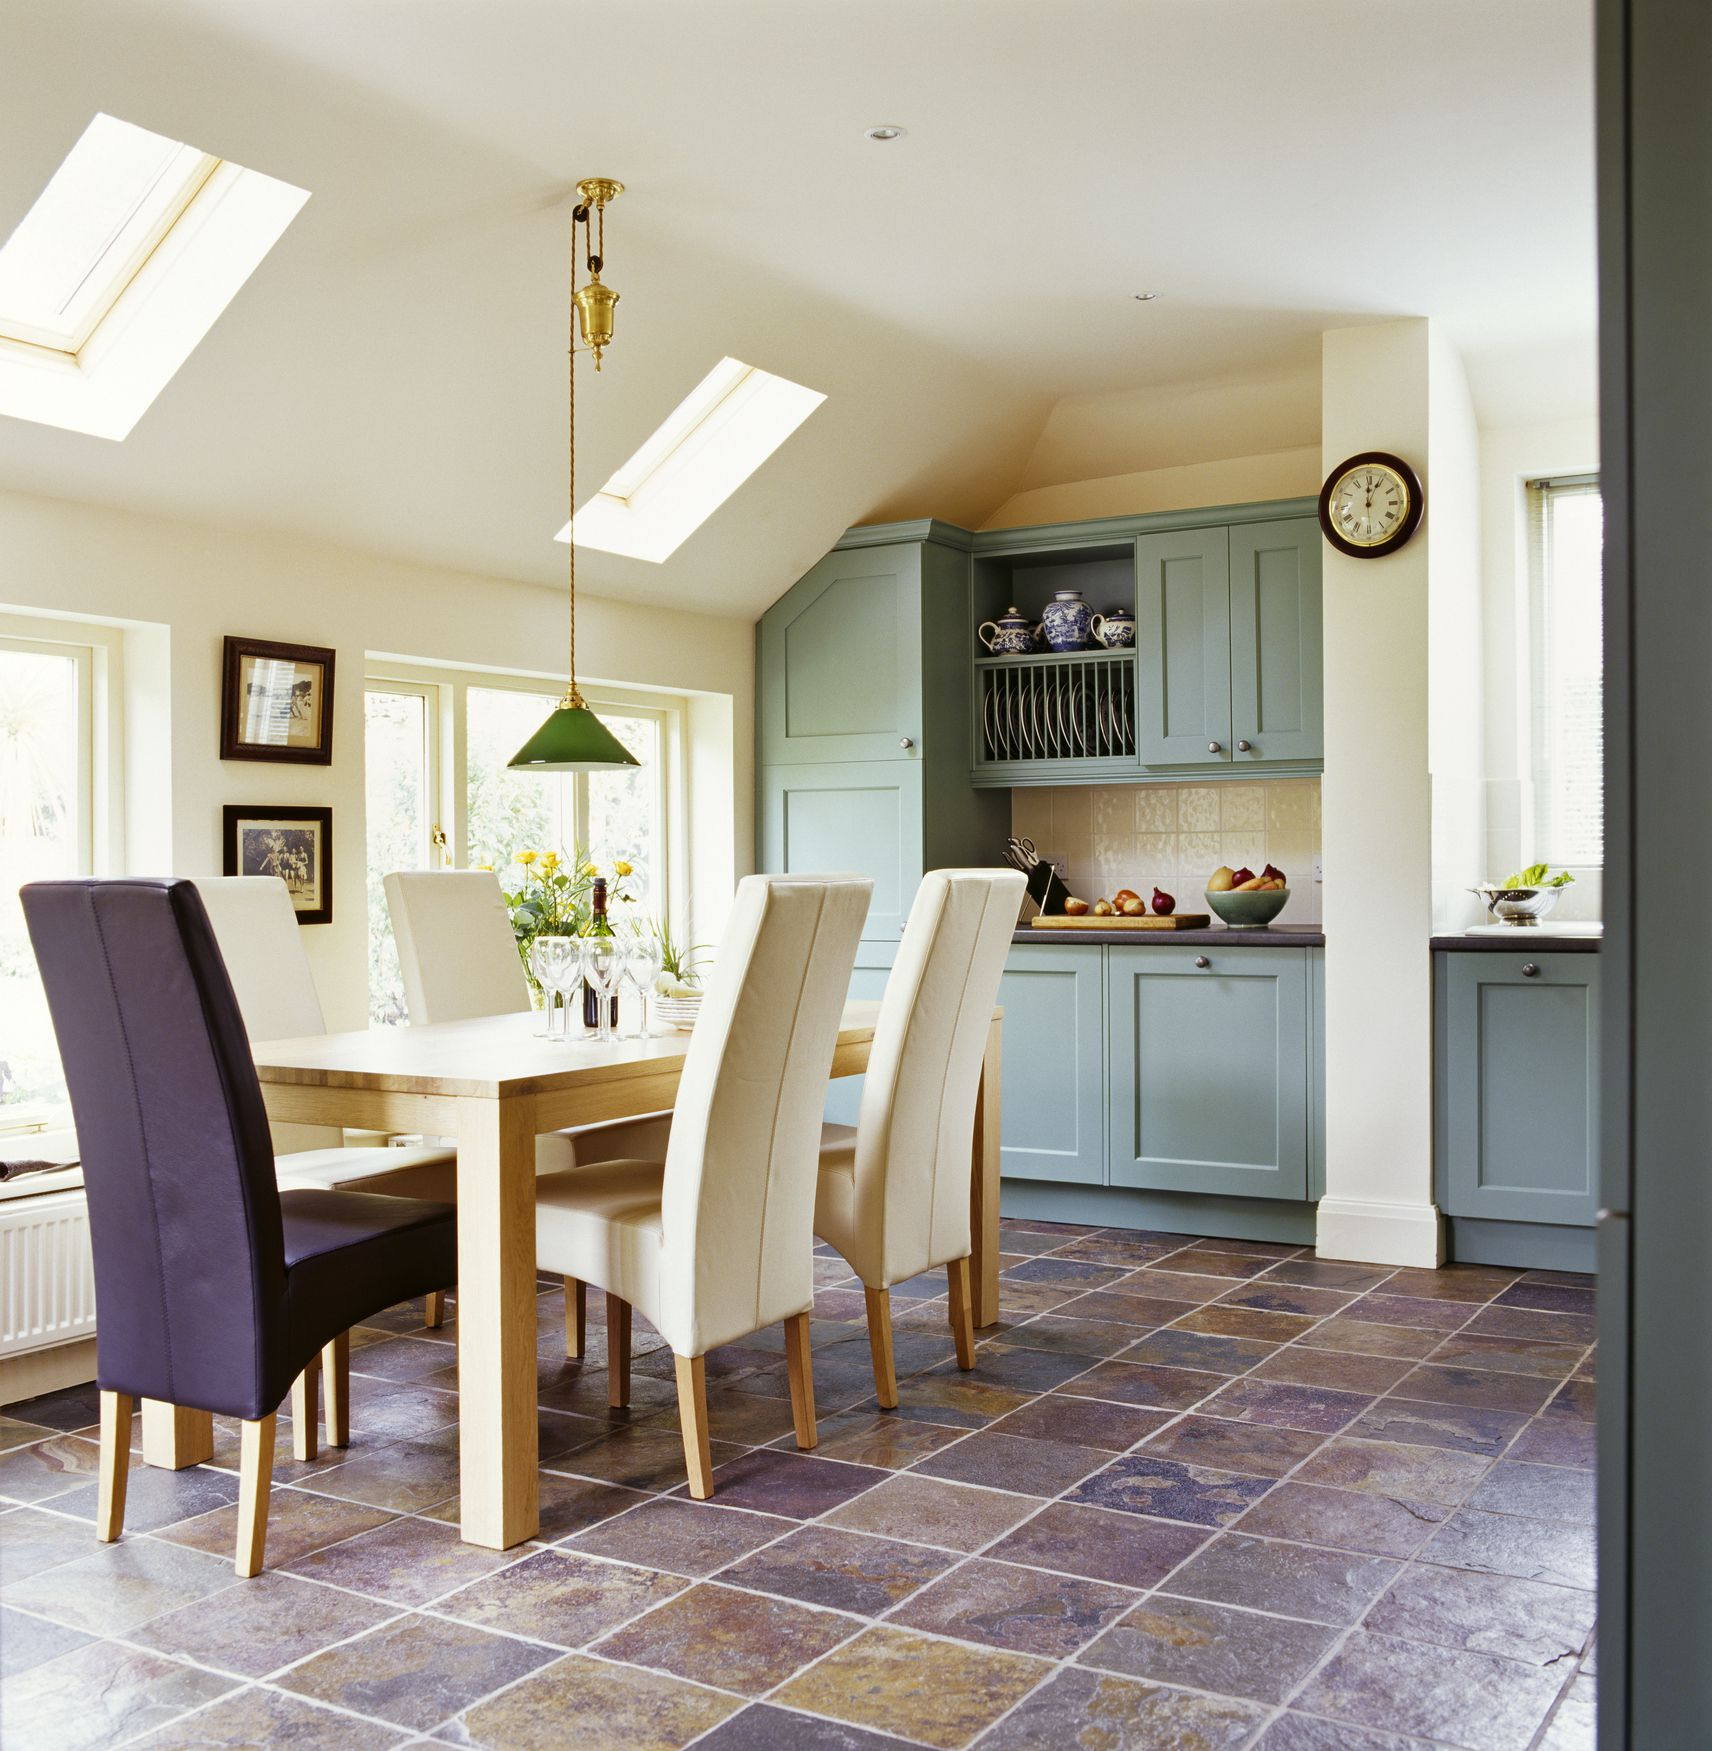 flooring for dining room. mannington adura flooring: resilient or real? flooring for dining room s